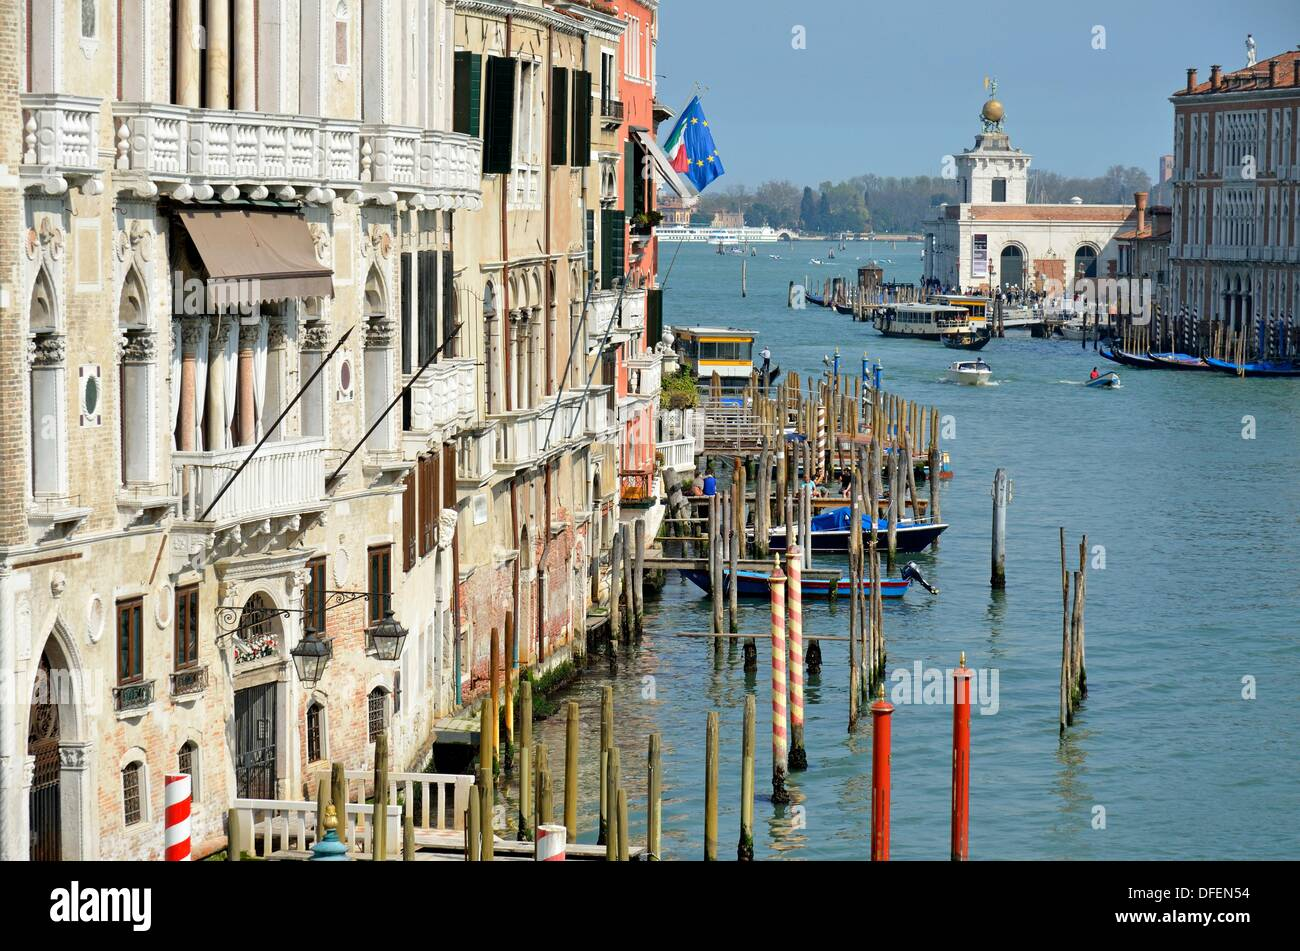 Grand Canal view from Academia Bridge, Venice, Italy - Stock Image